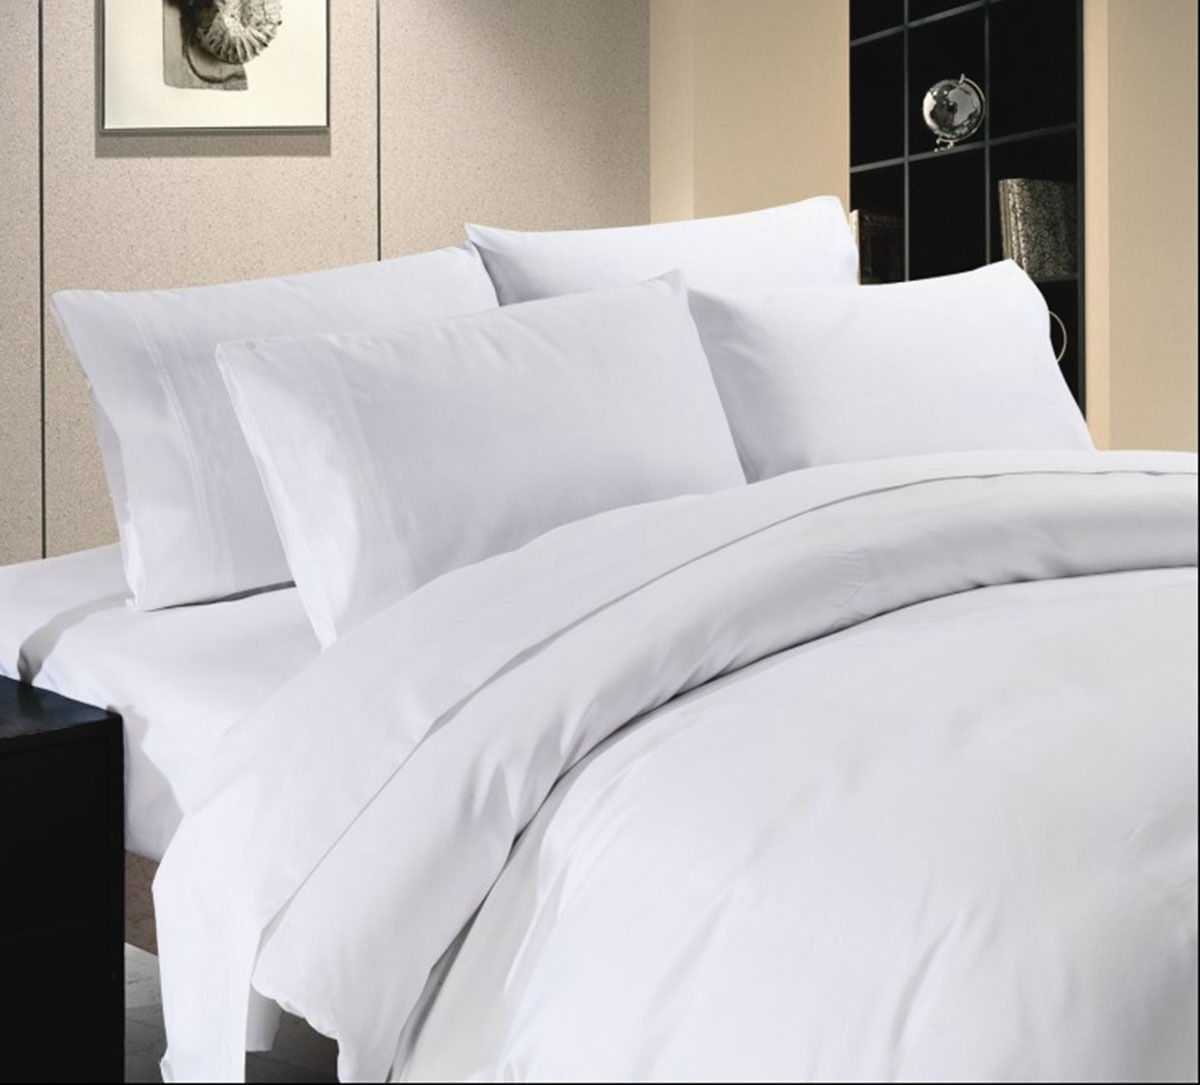 Premium Bedding Collection 1000 Thread Count Egypt Cotton All Größes Weiß Solid